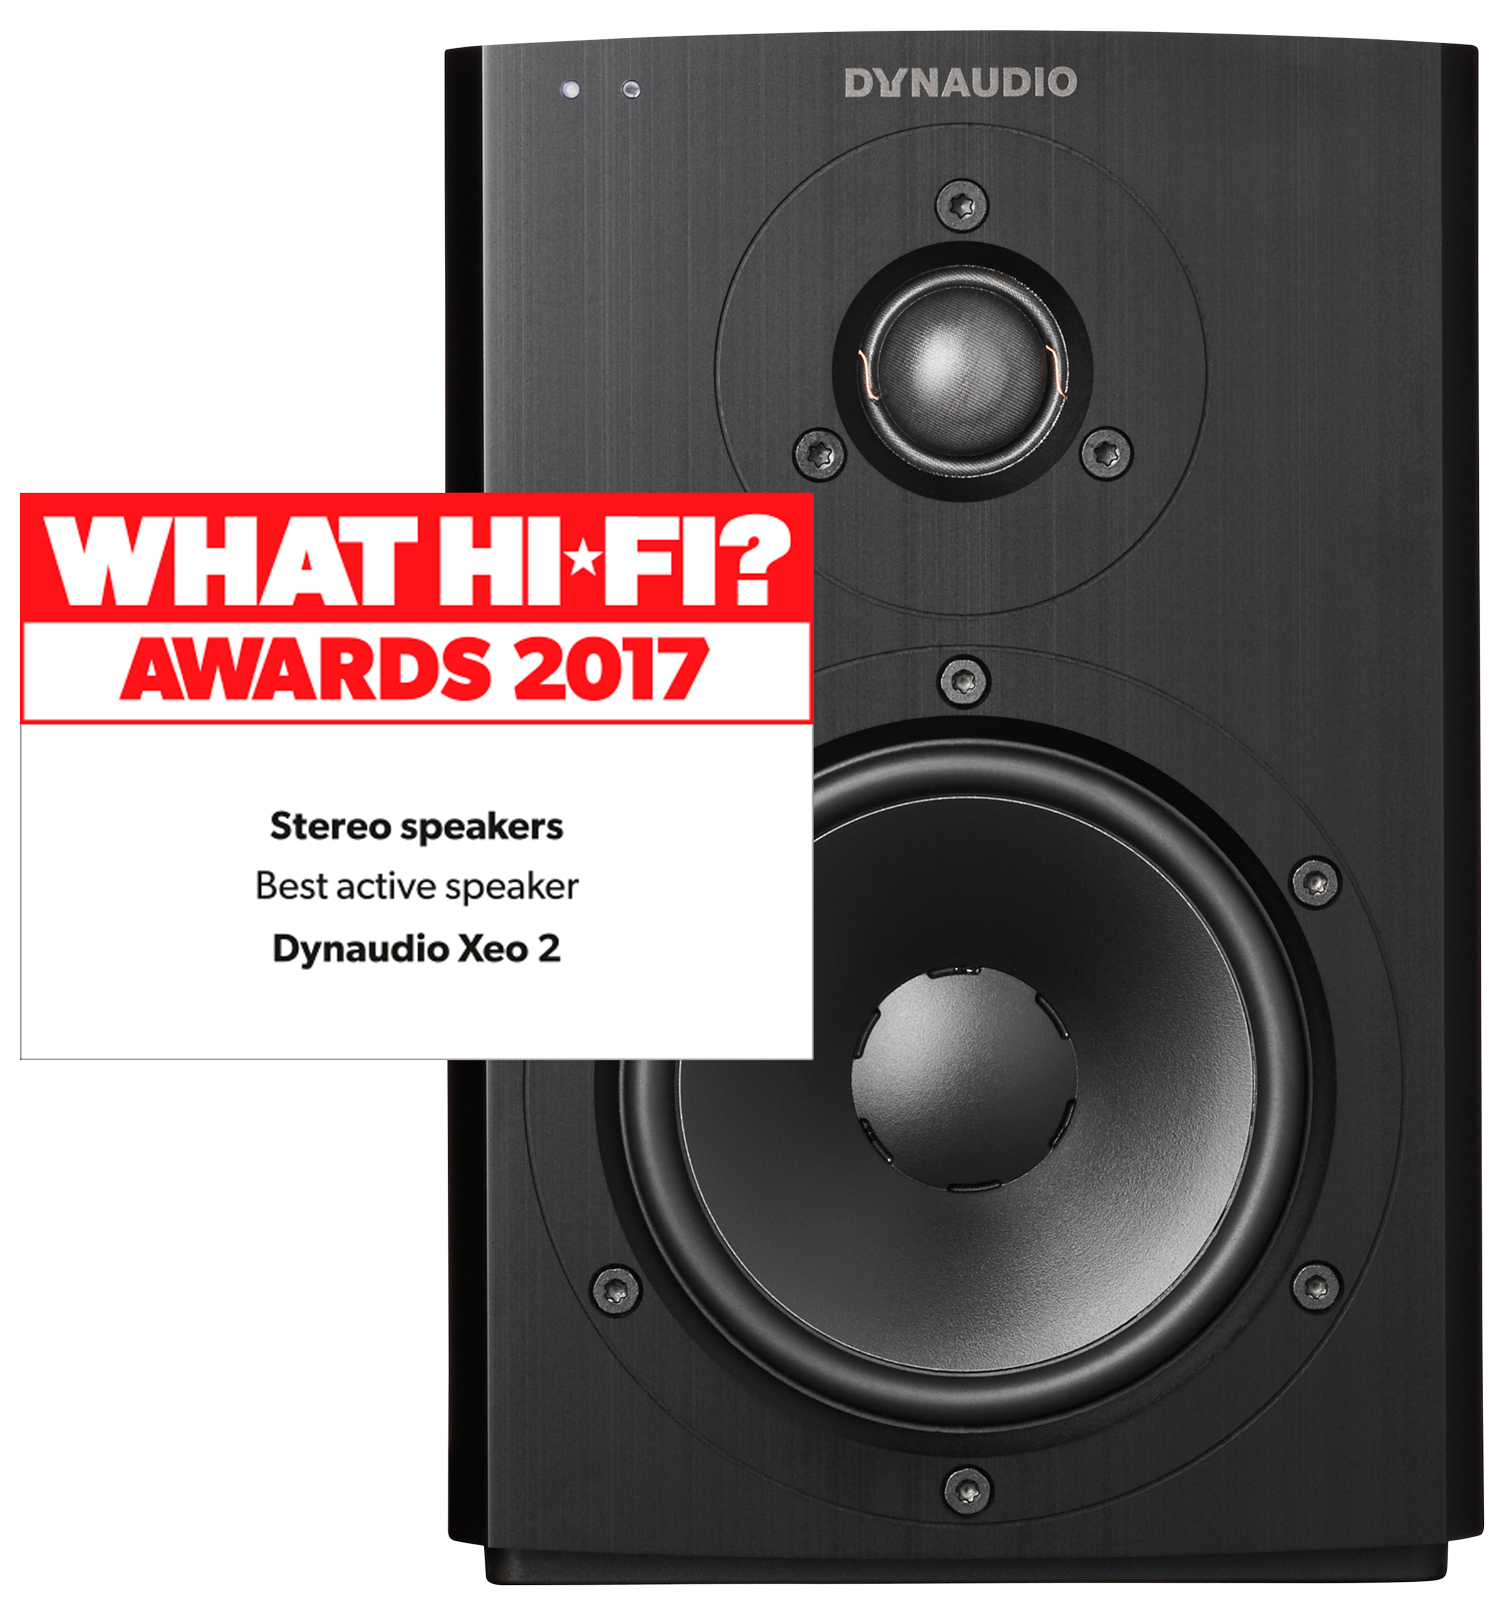 Black Xeo 2 Best Active Speaker of the Year at What Hi-Fi awards